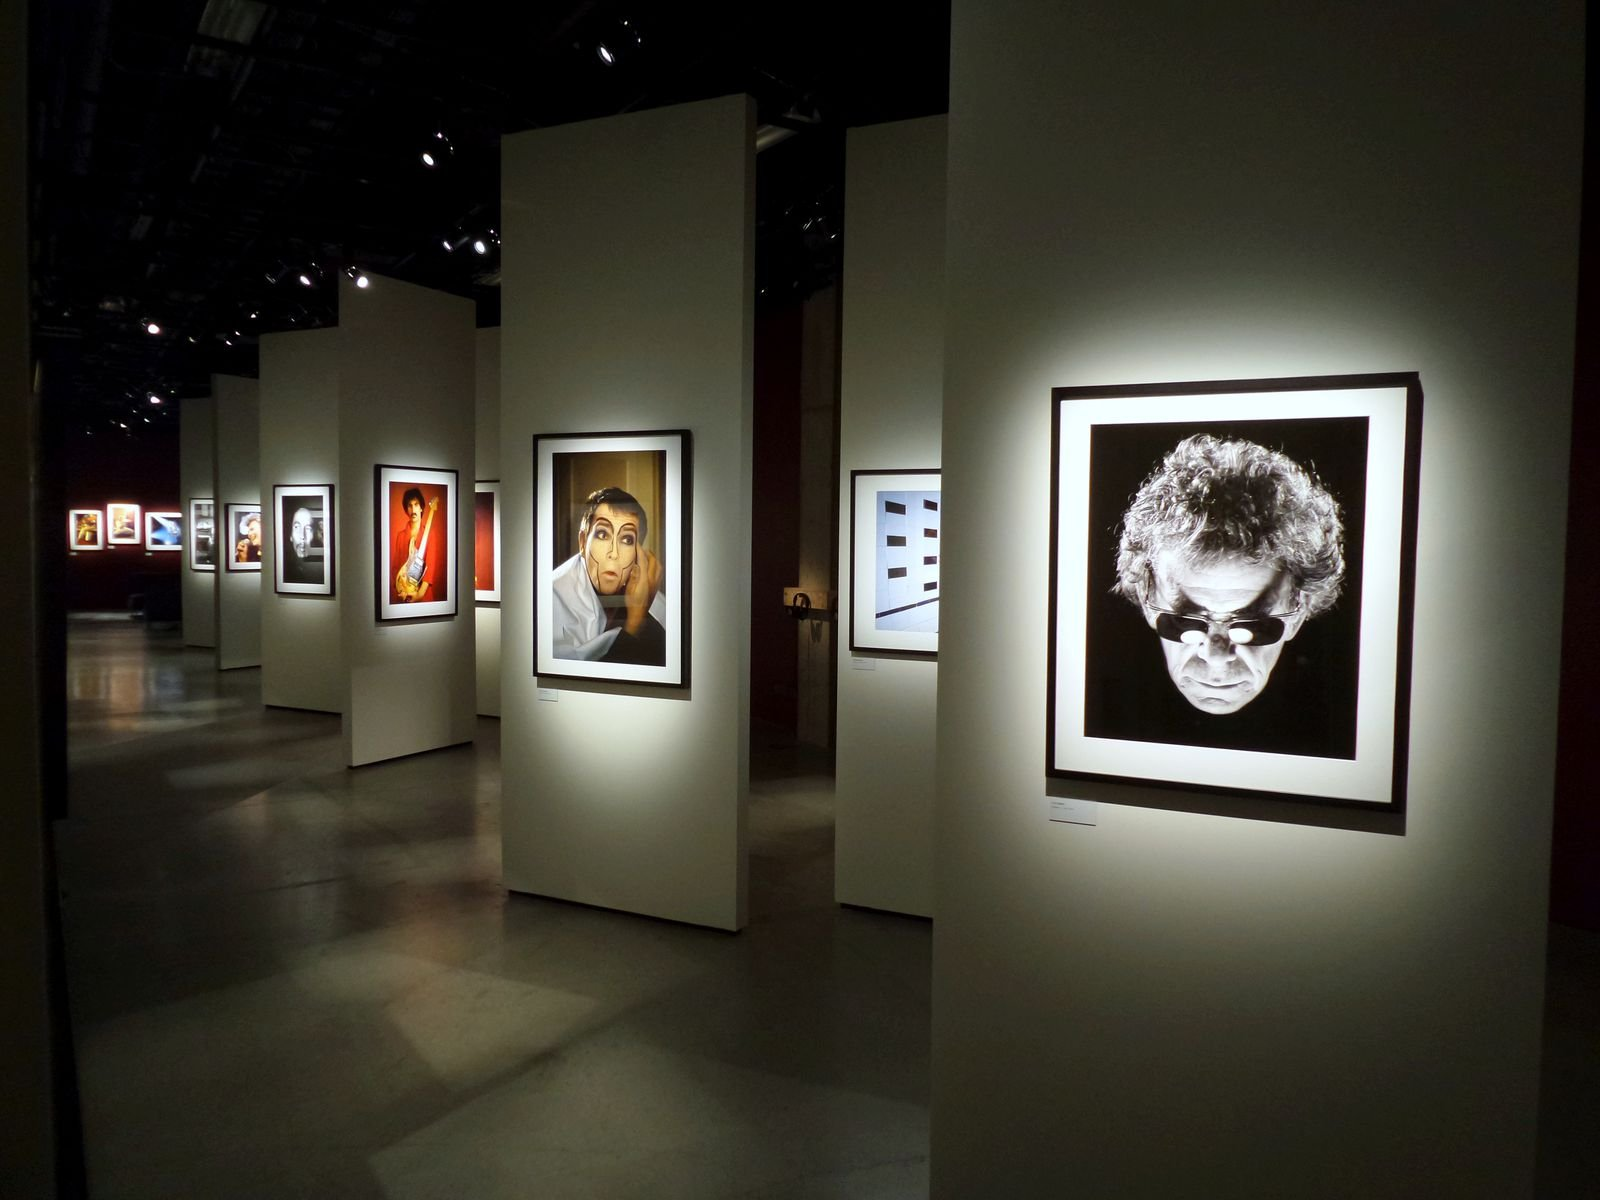 Image from the exhibition 'Wall of Sound - The Photography of  Guido Harari'